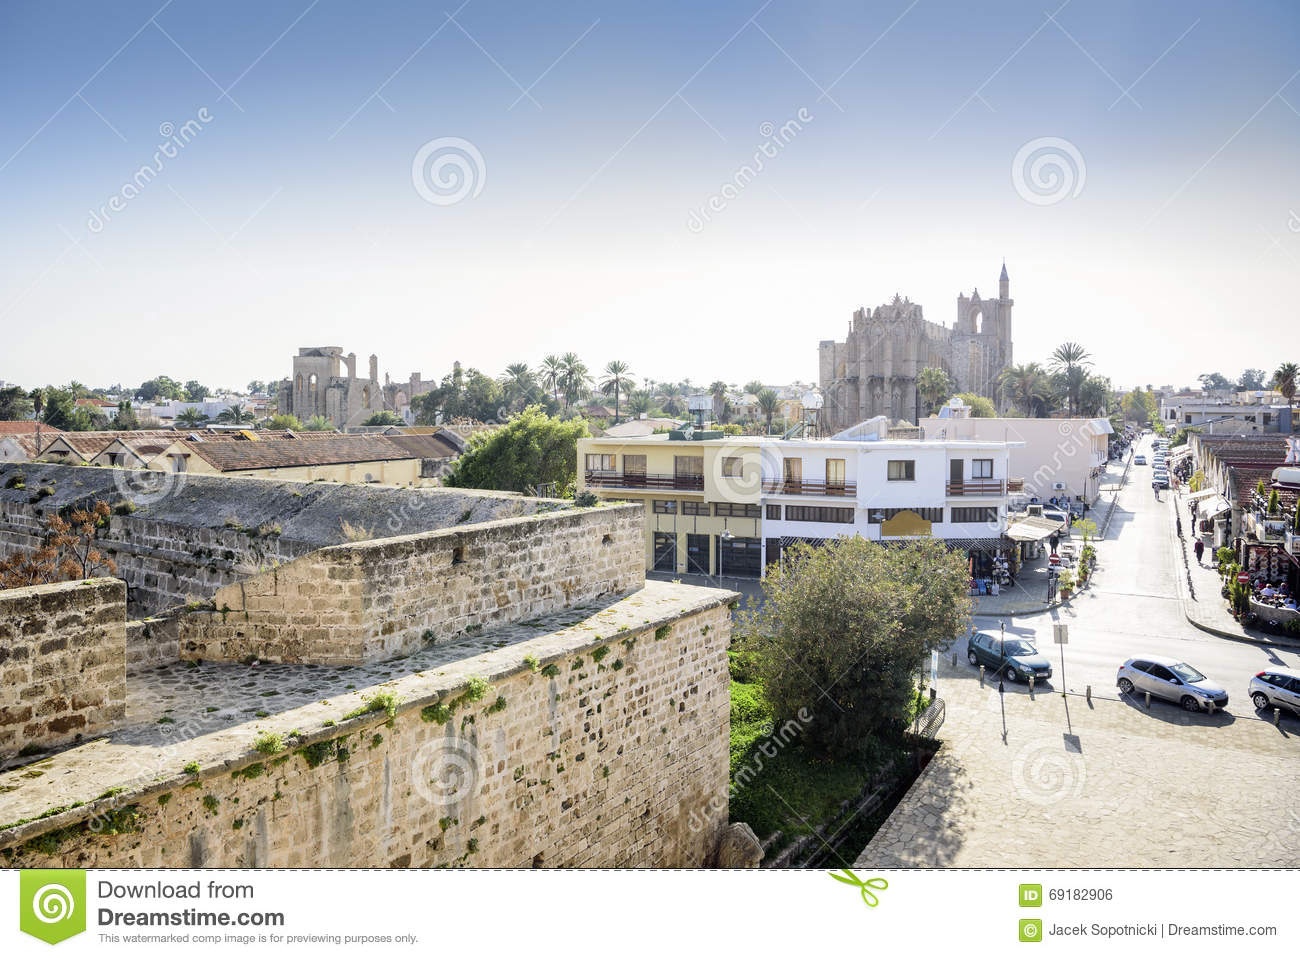 Famagusta City Walls And City Center, Northern Cyprus Stock Photo.